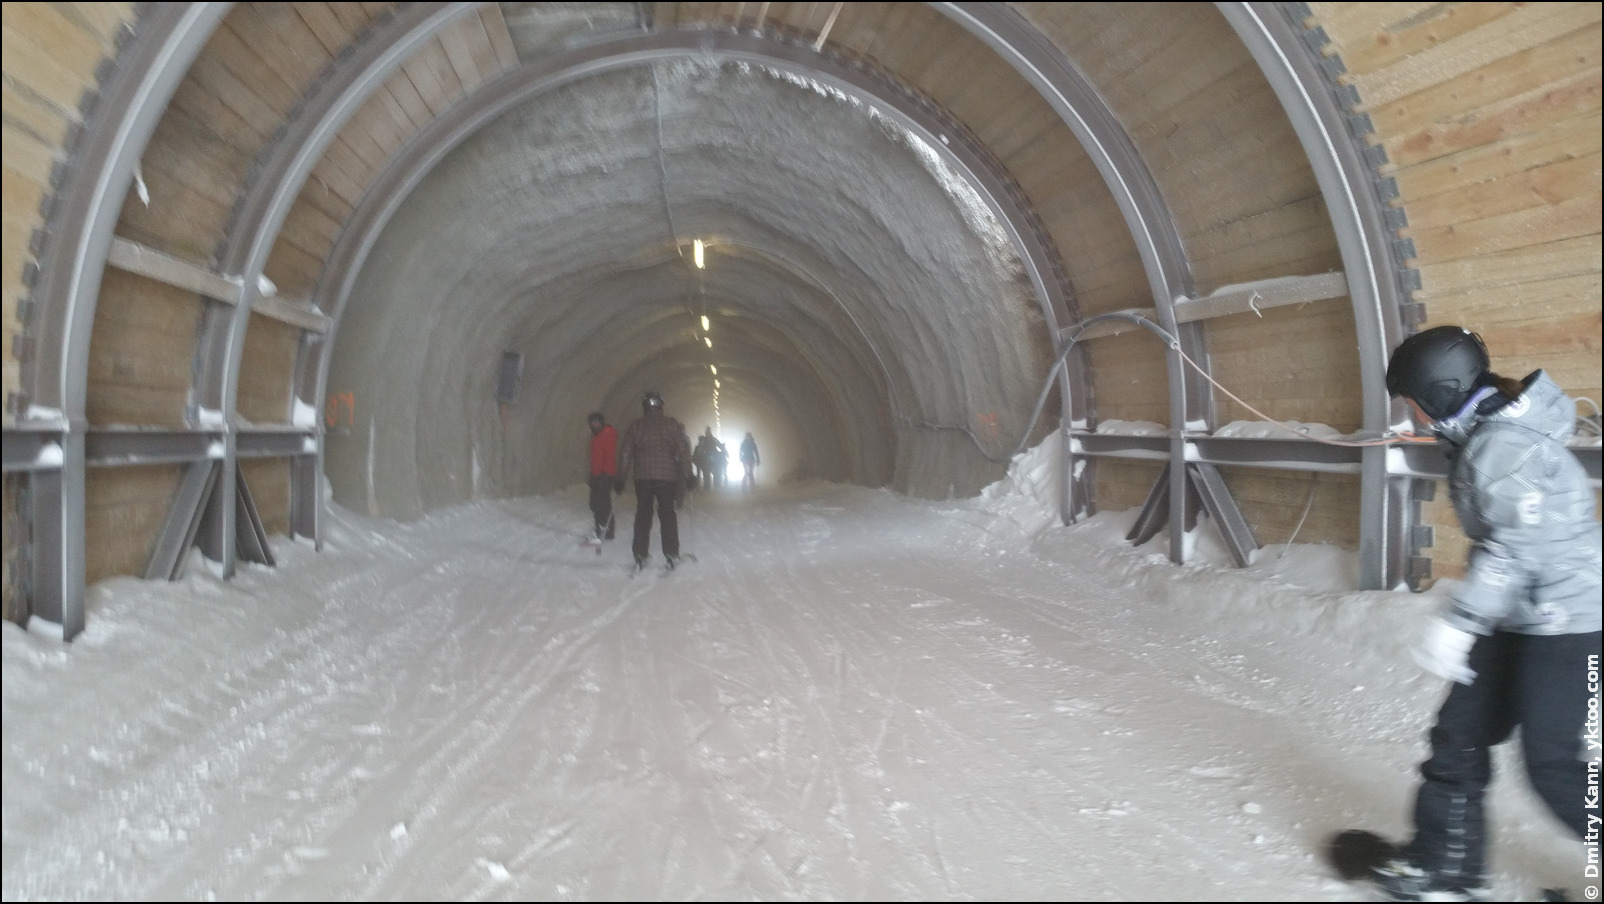 The ski tunnel on the glacier.